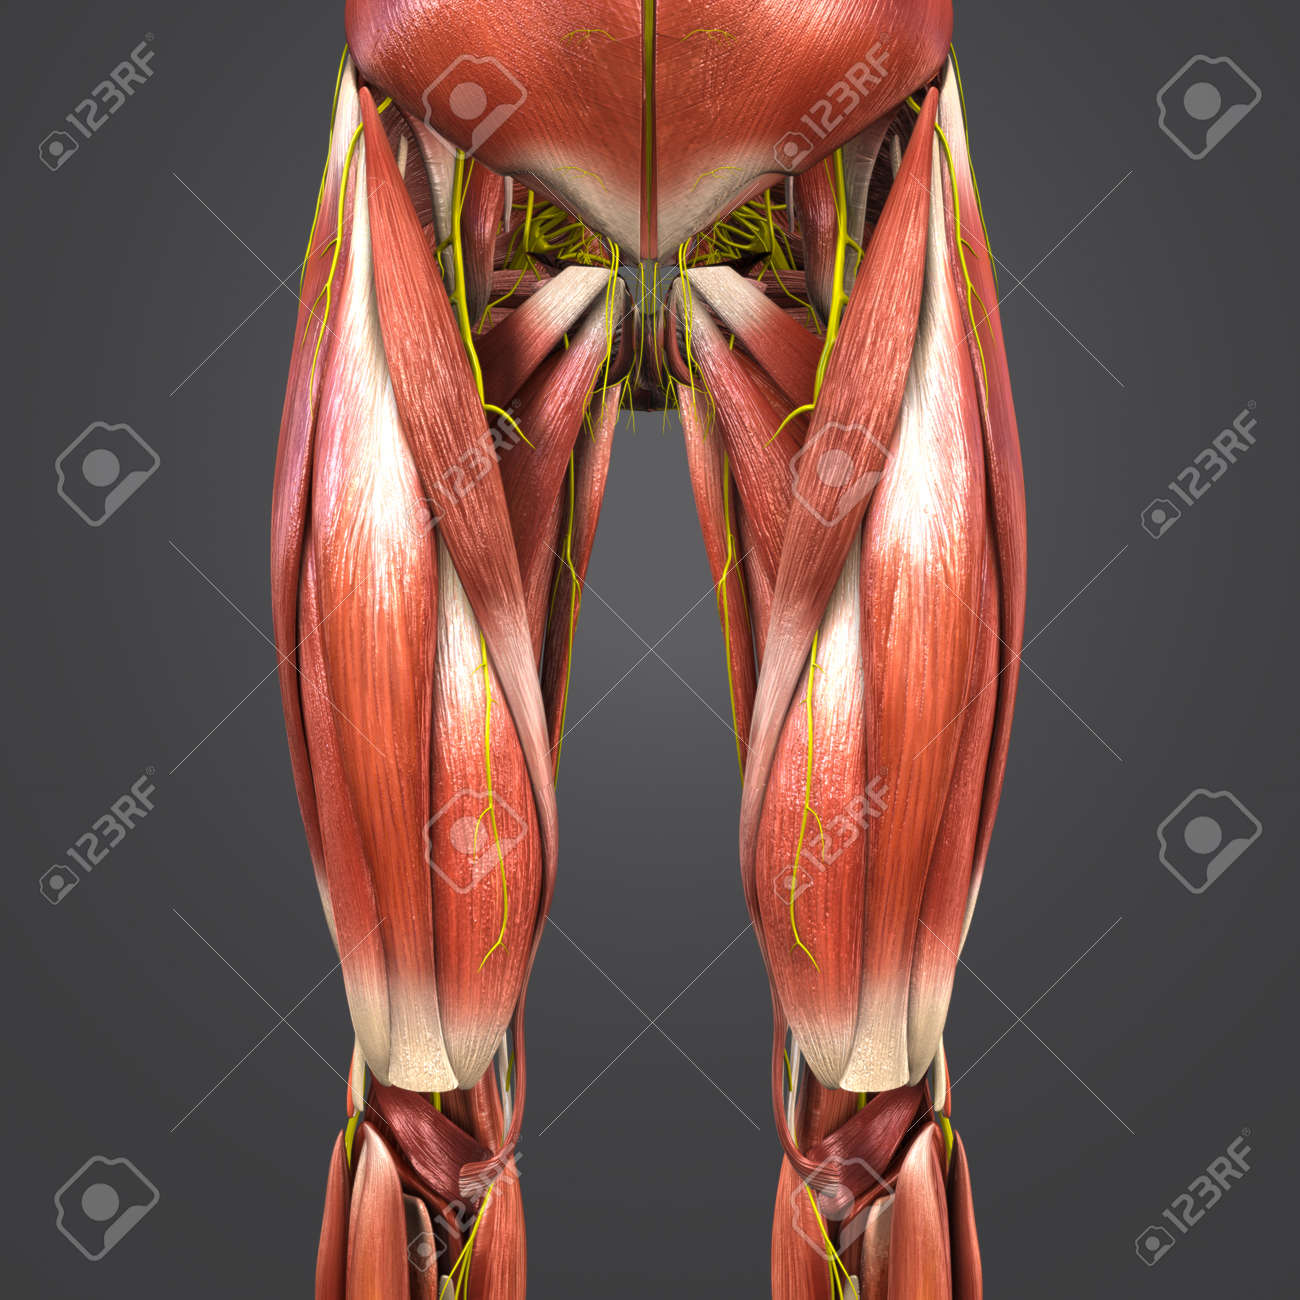 Muscles Anatomy With Nerves Of Hip And Thigh Anterior View Stock ...